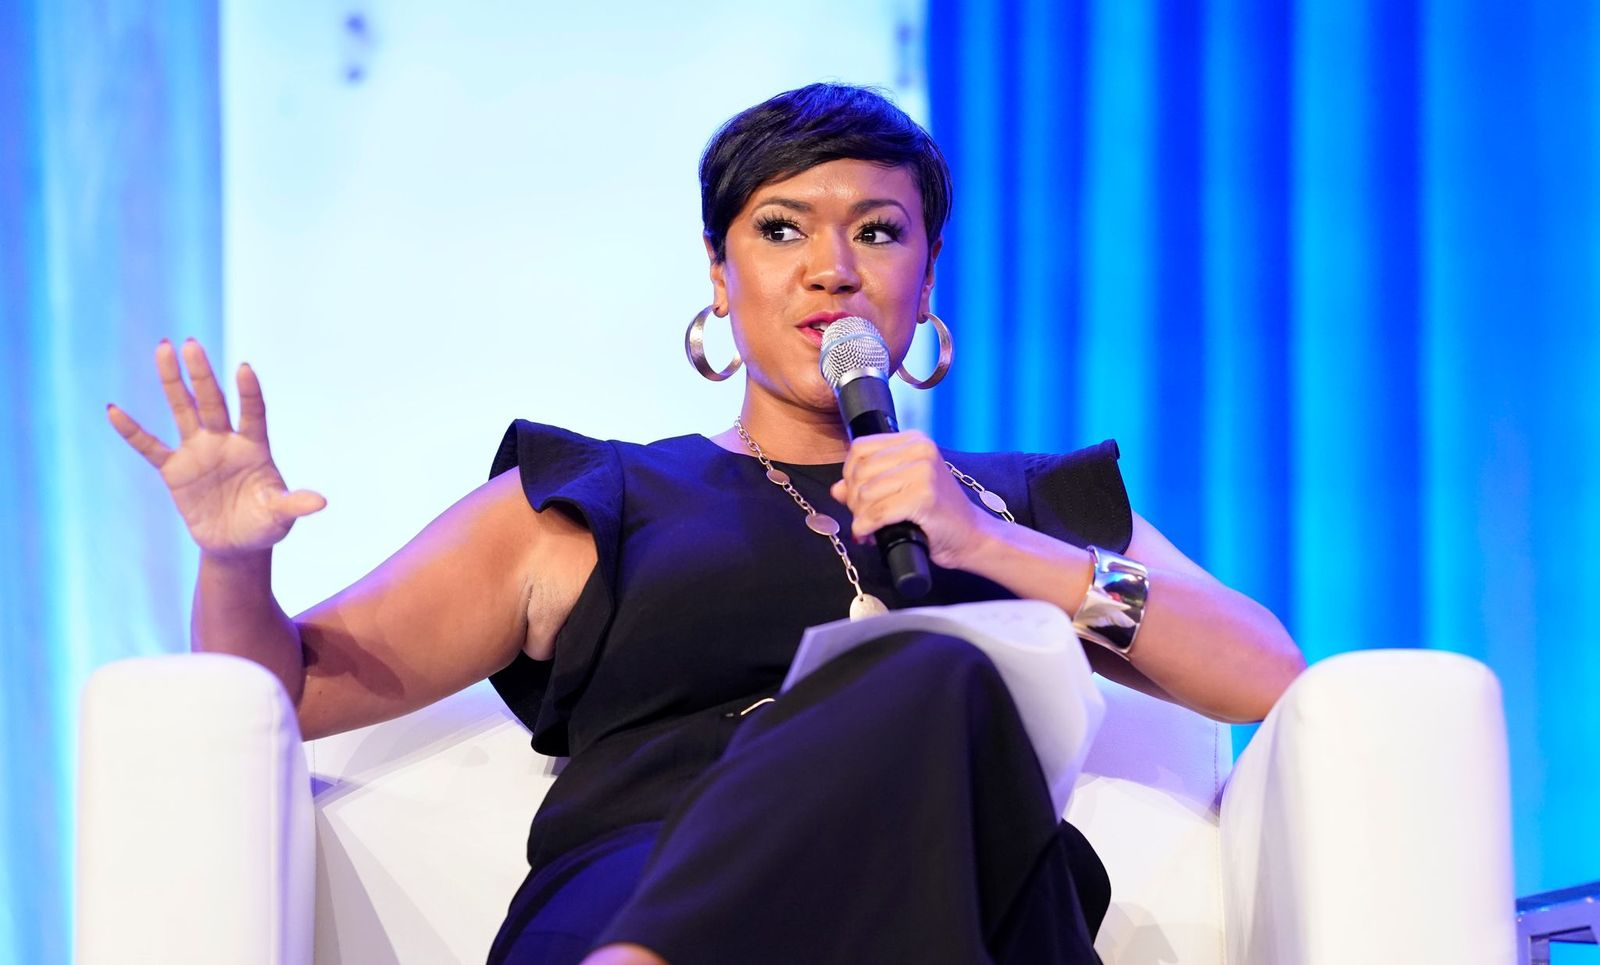 Tiffany D. Cross of The Beat DC speaks on stage at Texas Conference For Women 2019 at Austin Convention Center on October 24, 2019   Photo: Getty Images